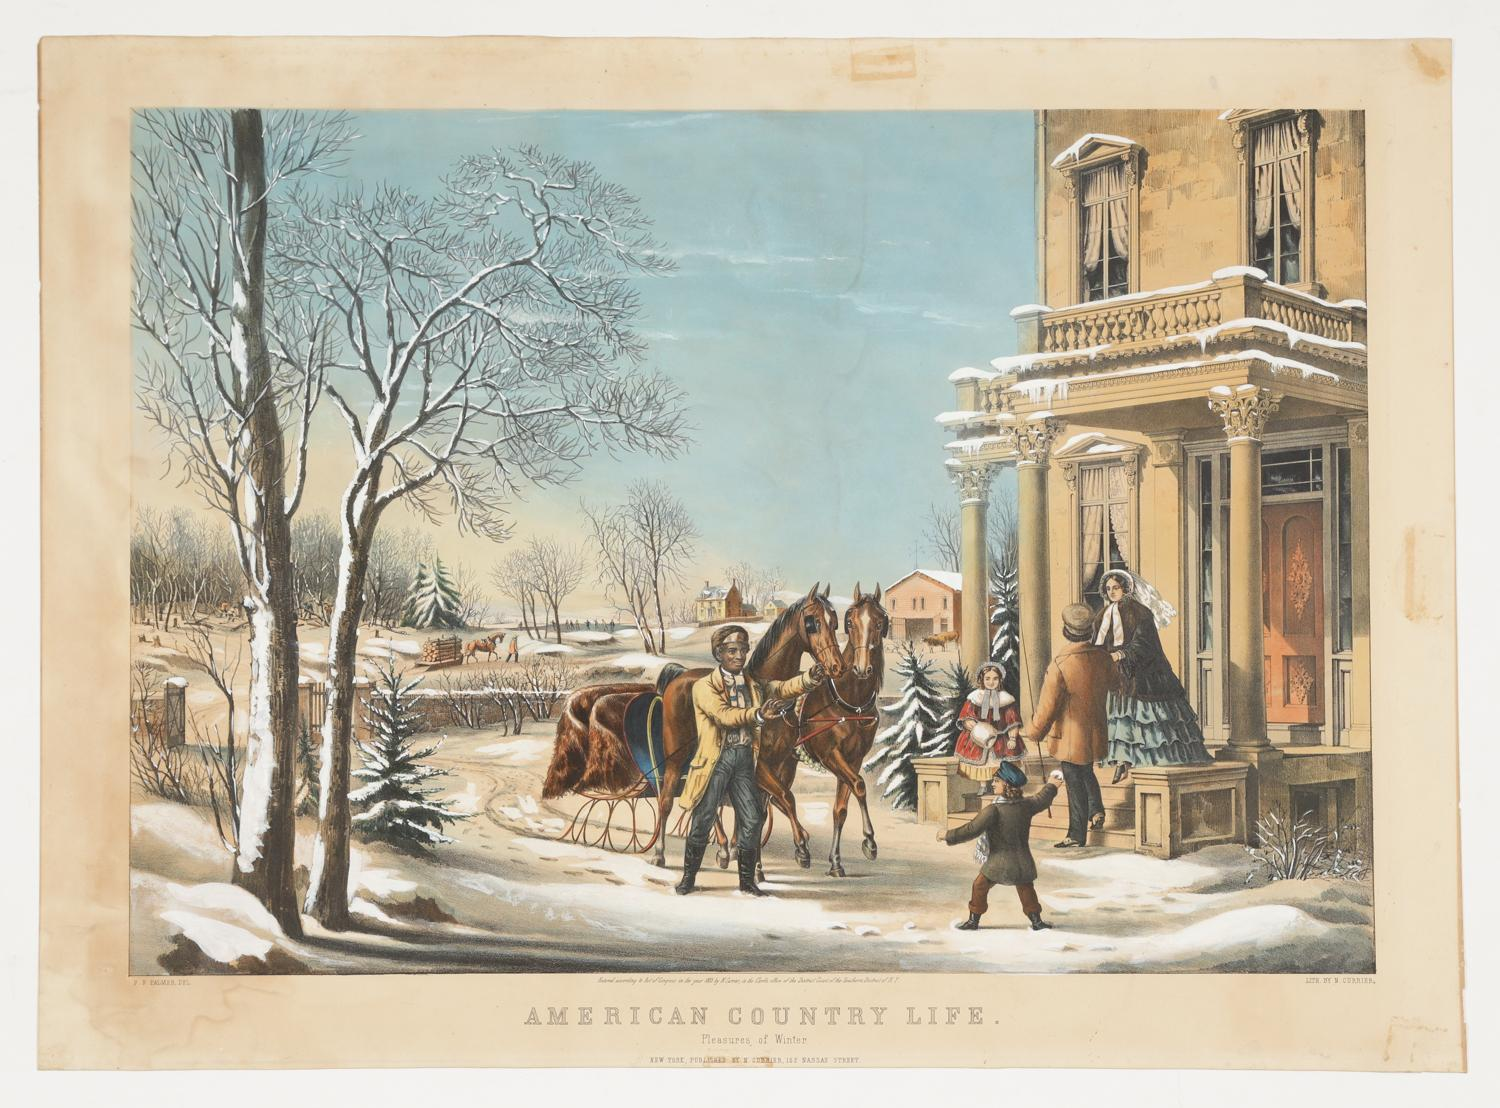 N Currier, American Country Life, Pleasures of Winter, Litho, 1855